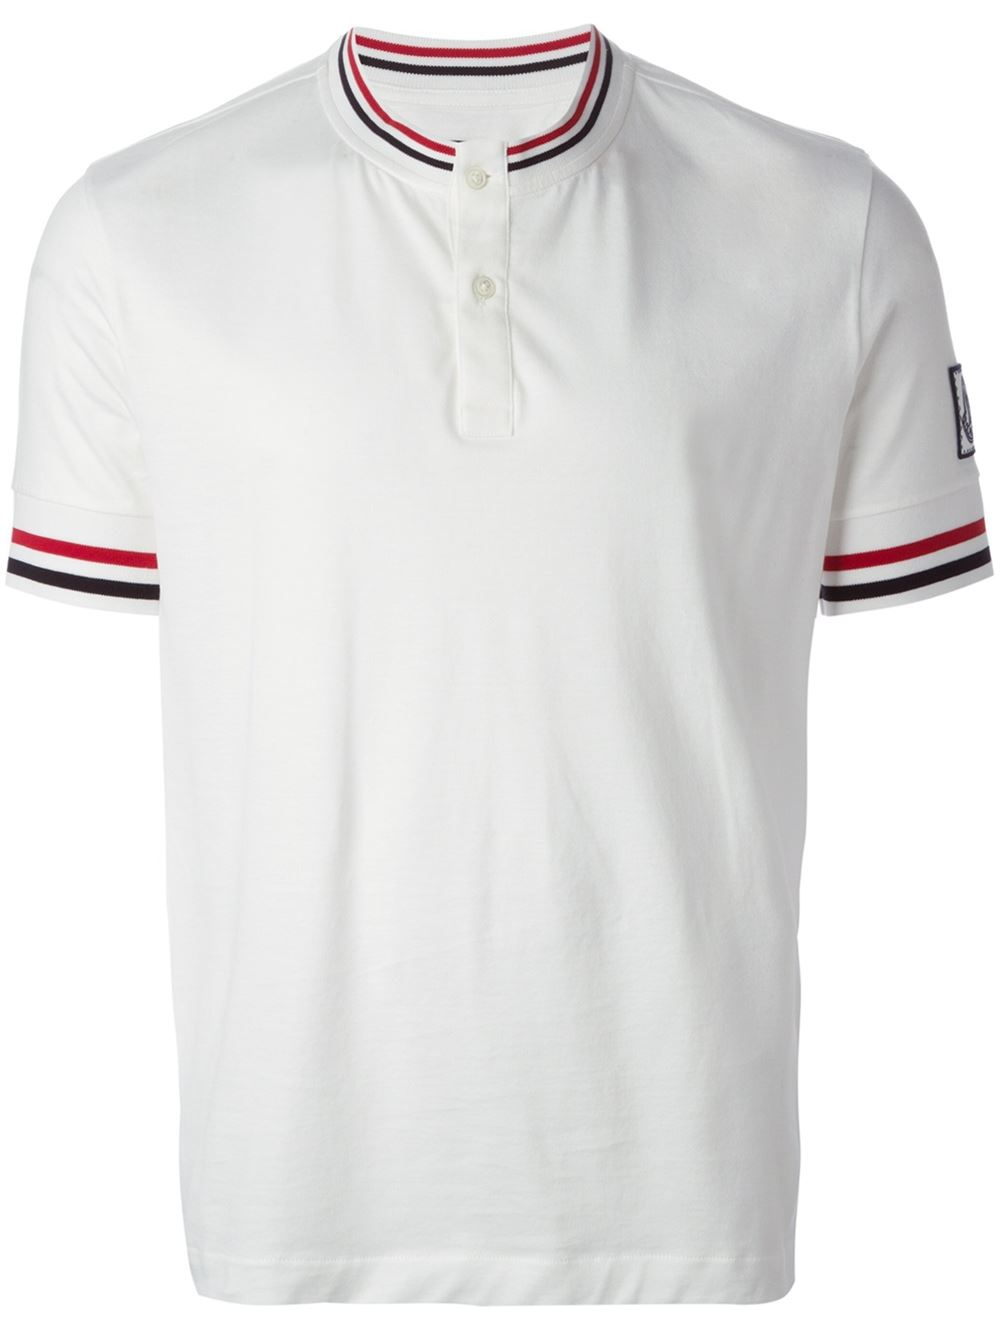 moncler gamme bleu band collar polo shirt in white for men lyst. Black Bedroom Furniture Sets. Home Design Ideas